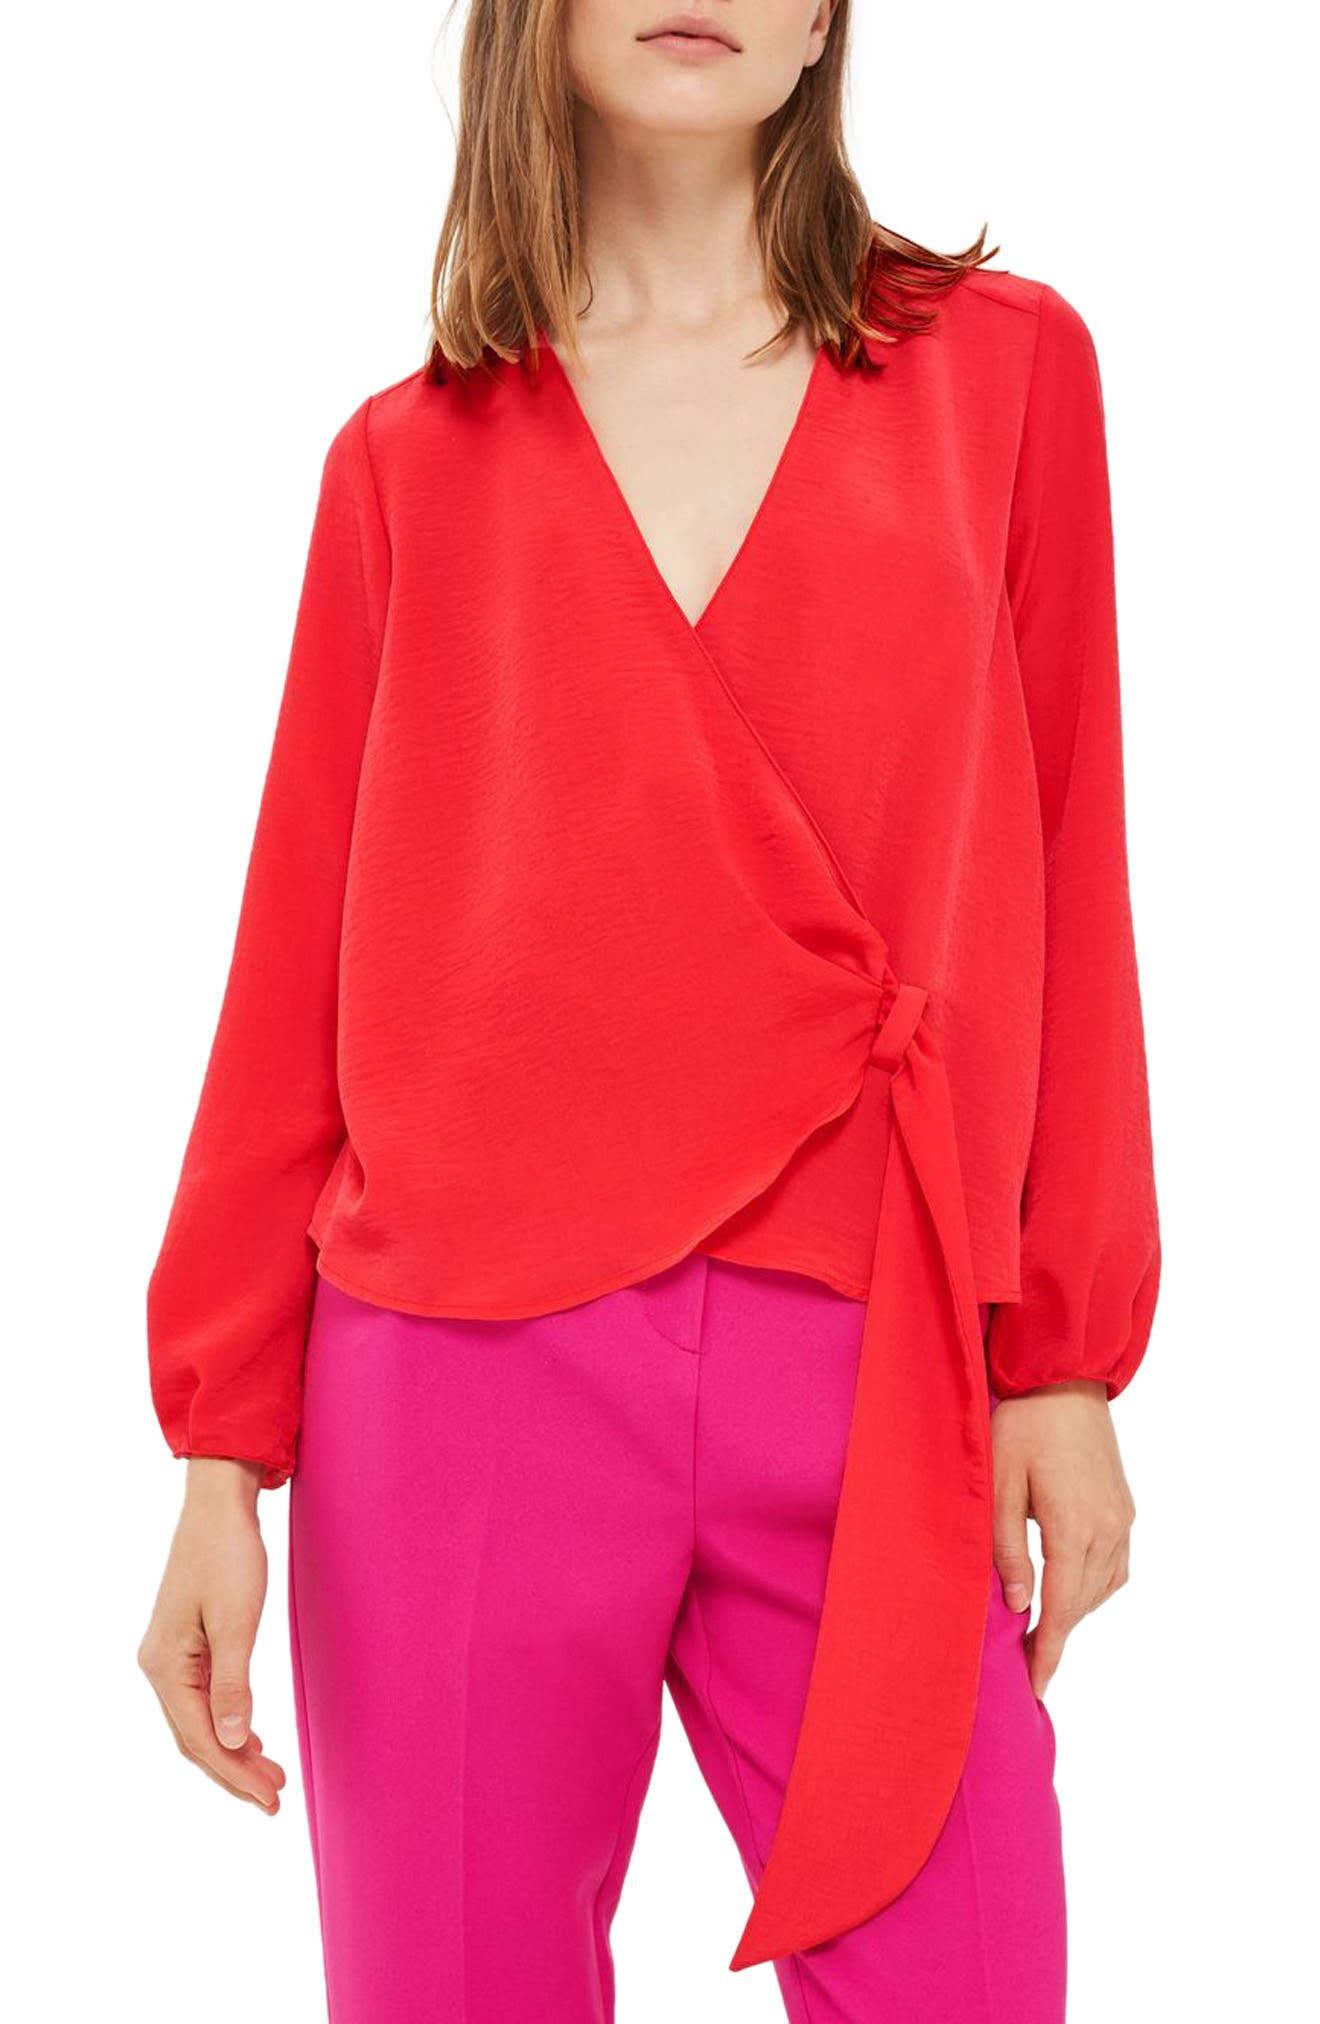 Topshop Wrap Tuck Blouse